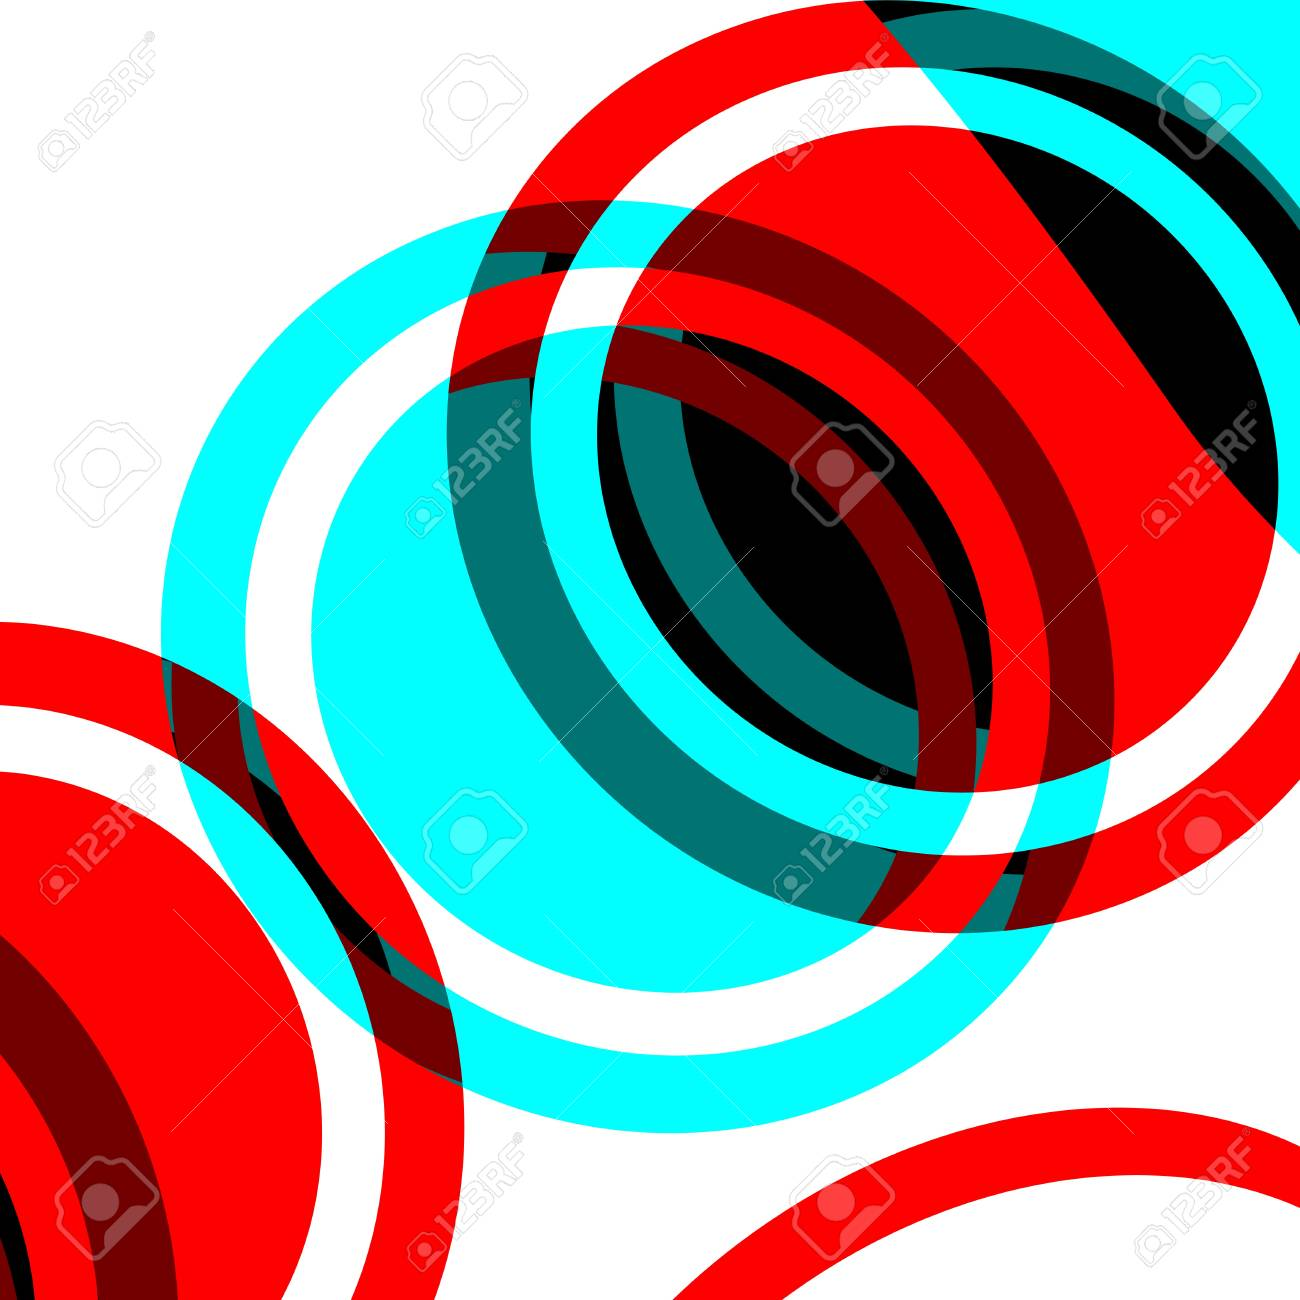 Circles art wallpaper Stock Vector - 17509393